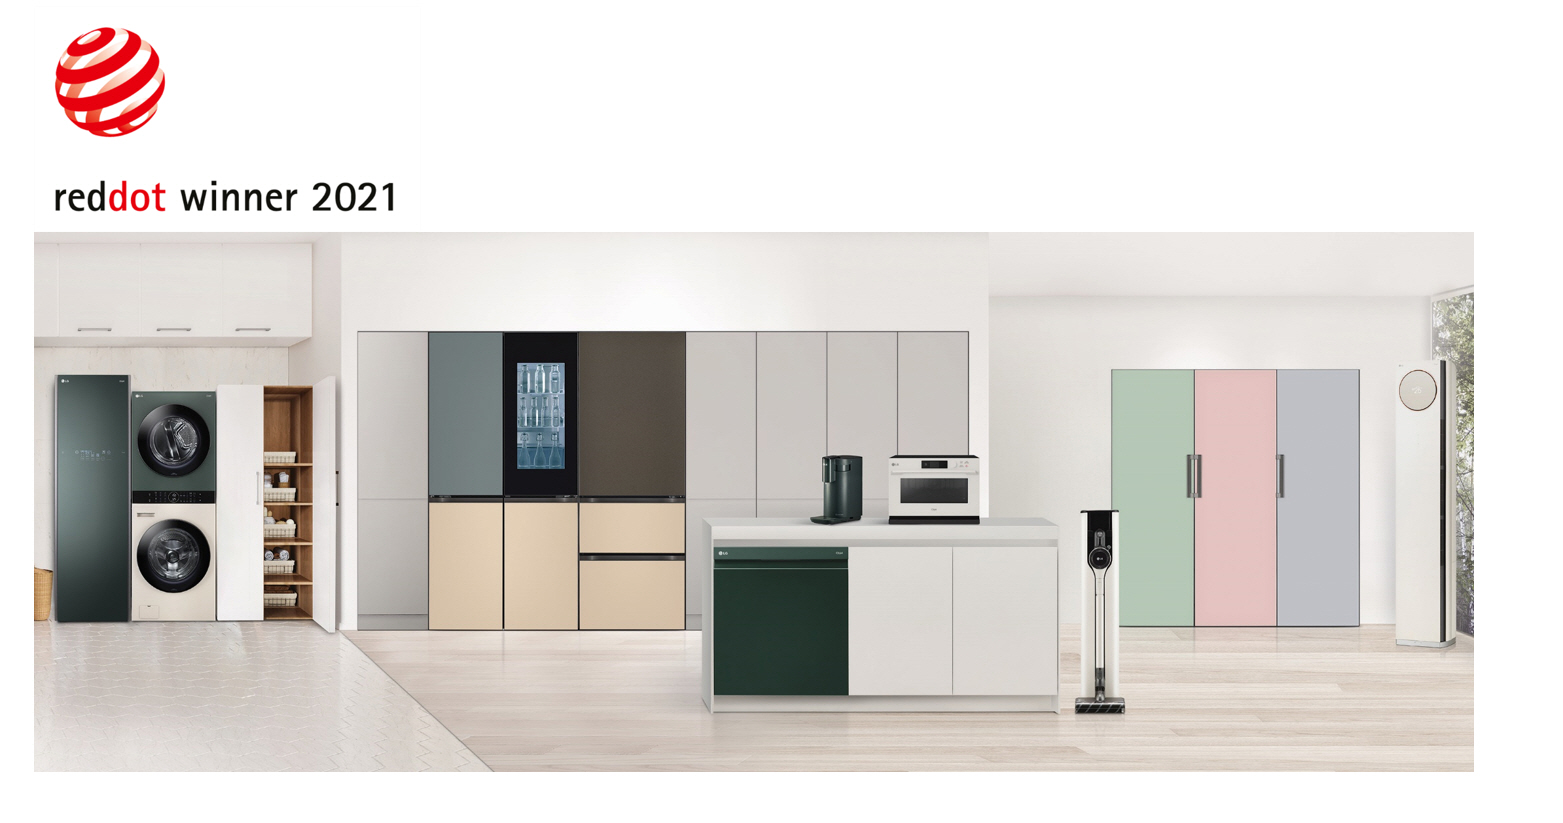 A collection of LG's 2021 Red Dot Award-winning home appliances displayed in a modern setting.